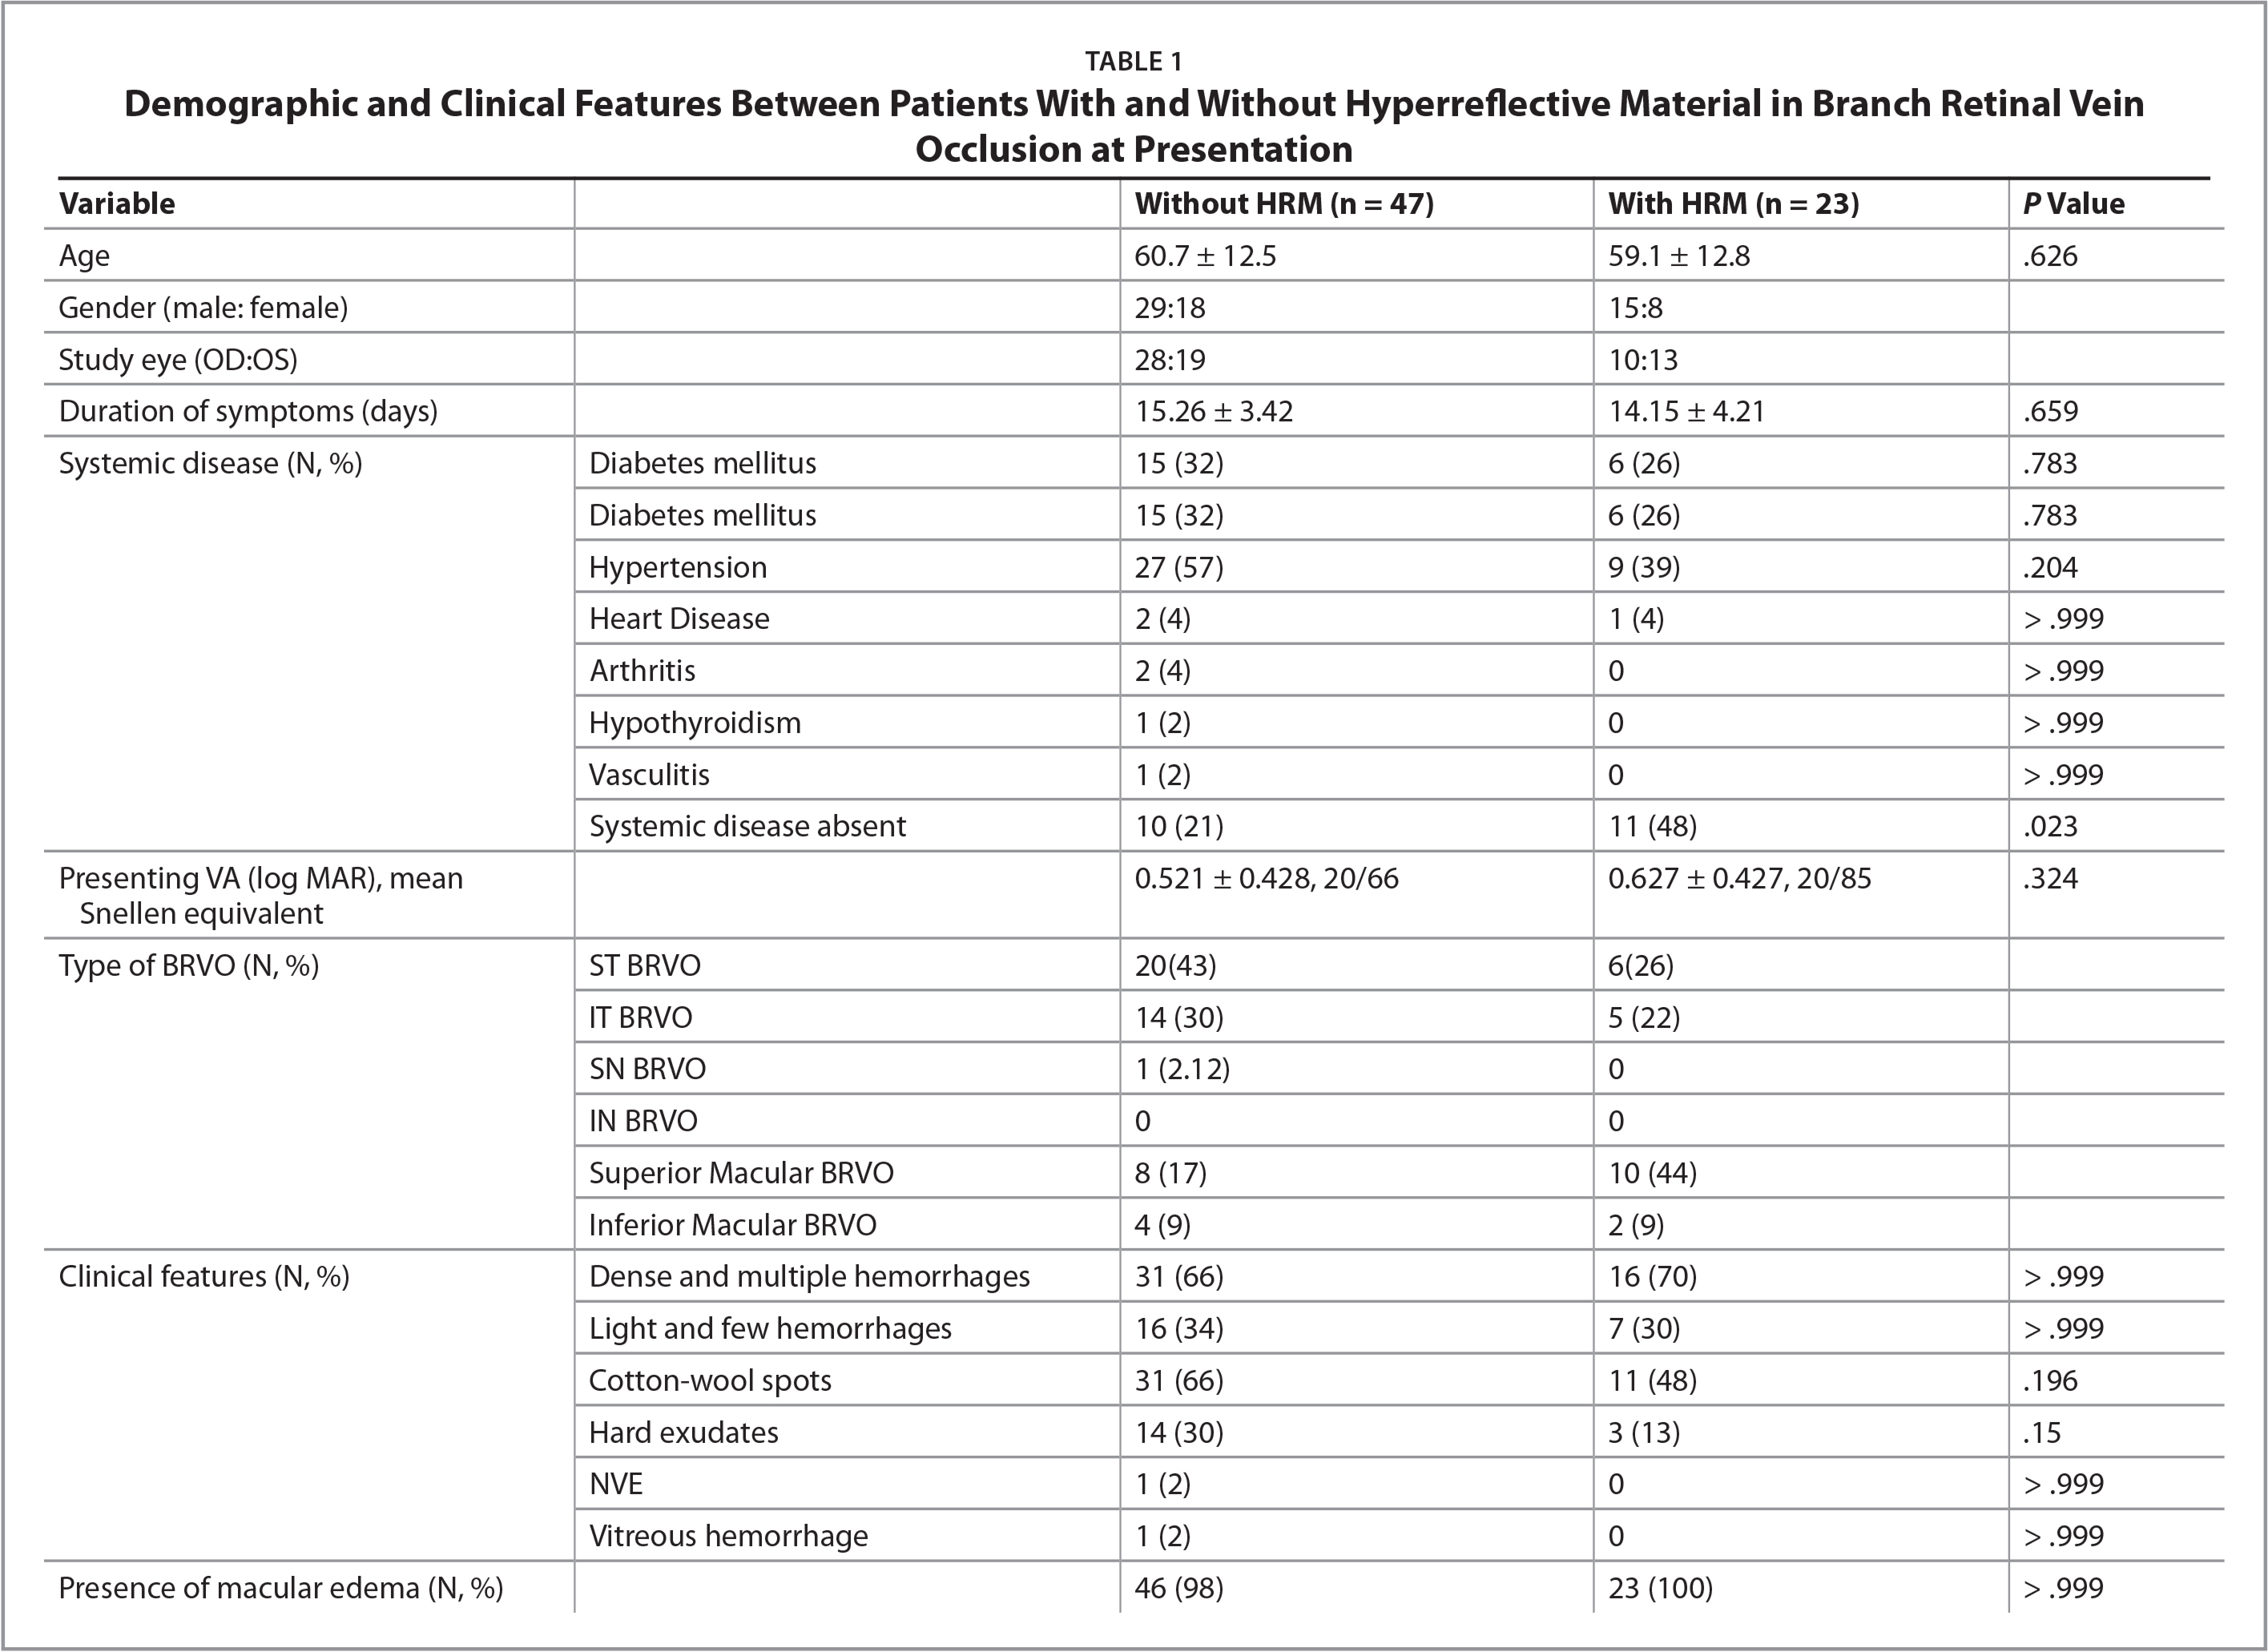 Demographic and Clinical Features Between Patients With and Without Hyperreflective Material in Branch Retinal Vein Occlusion at Presentation